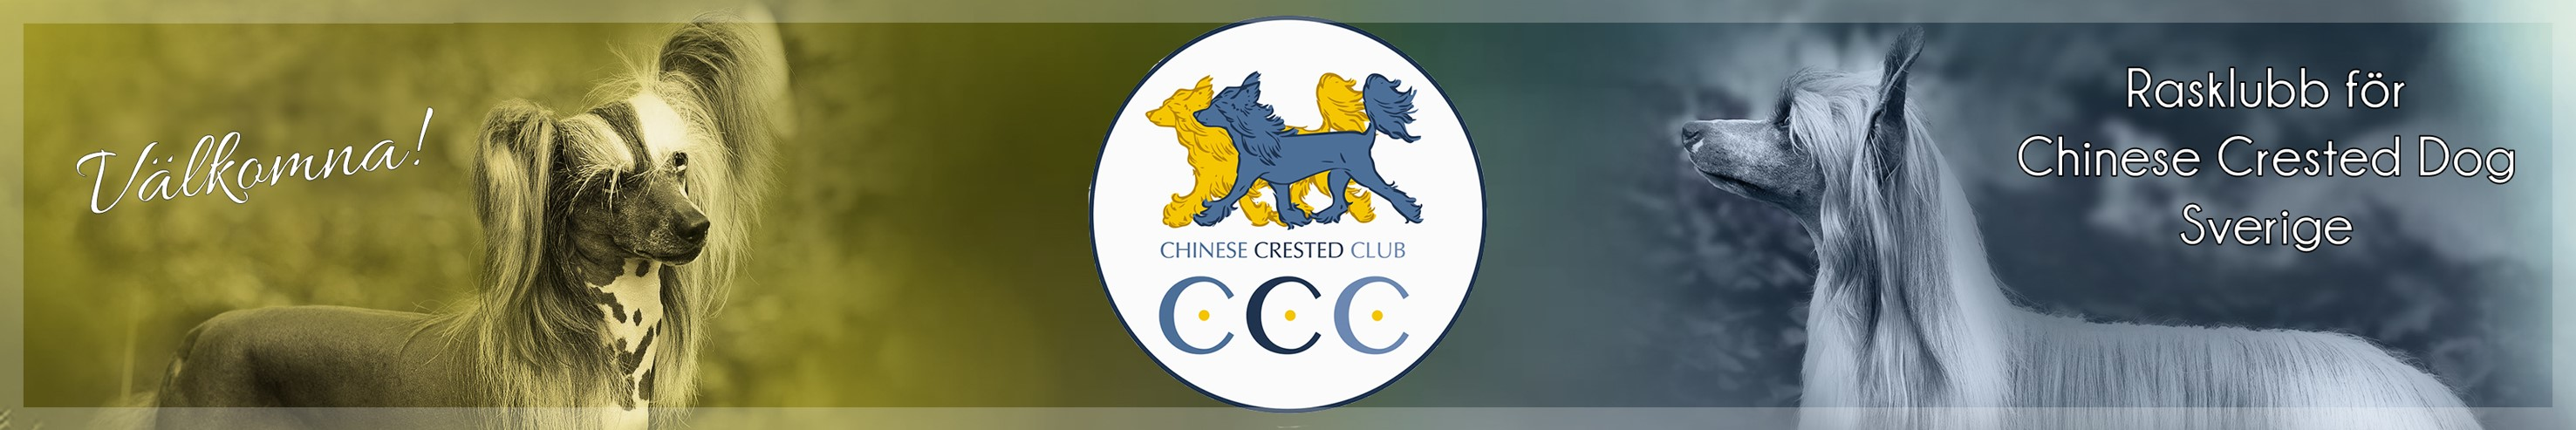 Chinese Crested Club